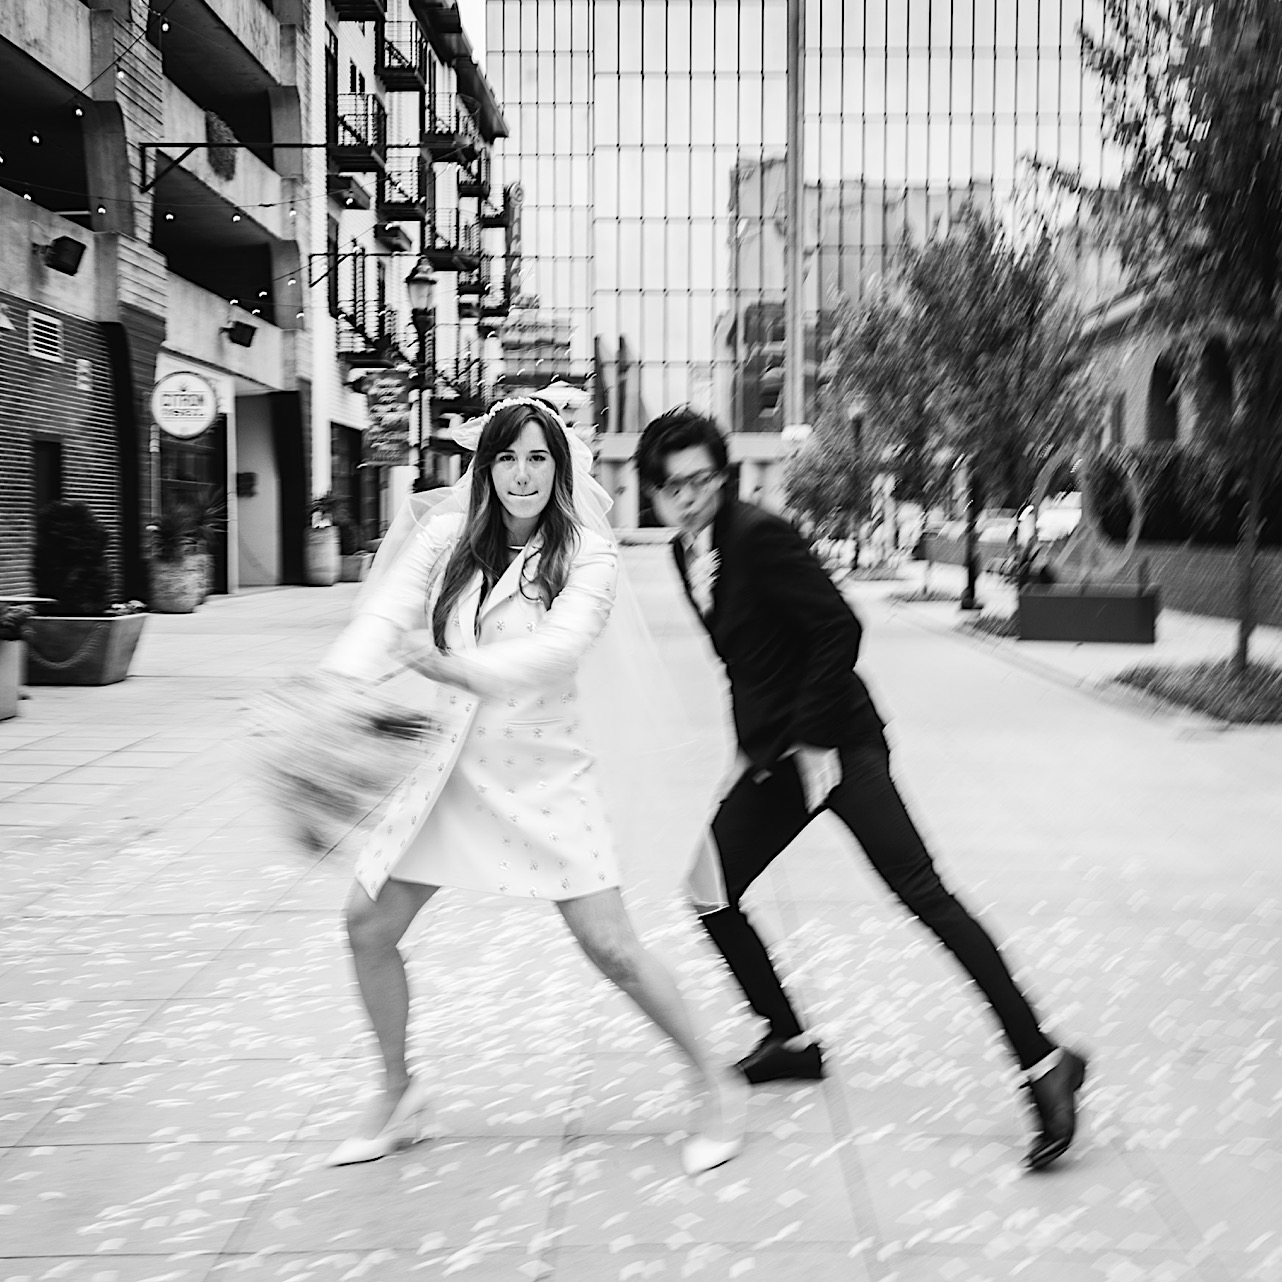 A bride and groom strike a funny dance move in downtown Chattanooga.